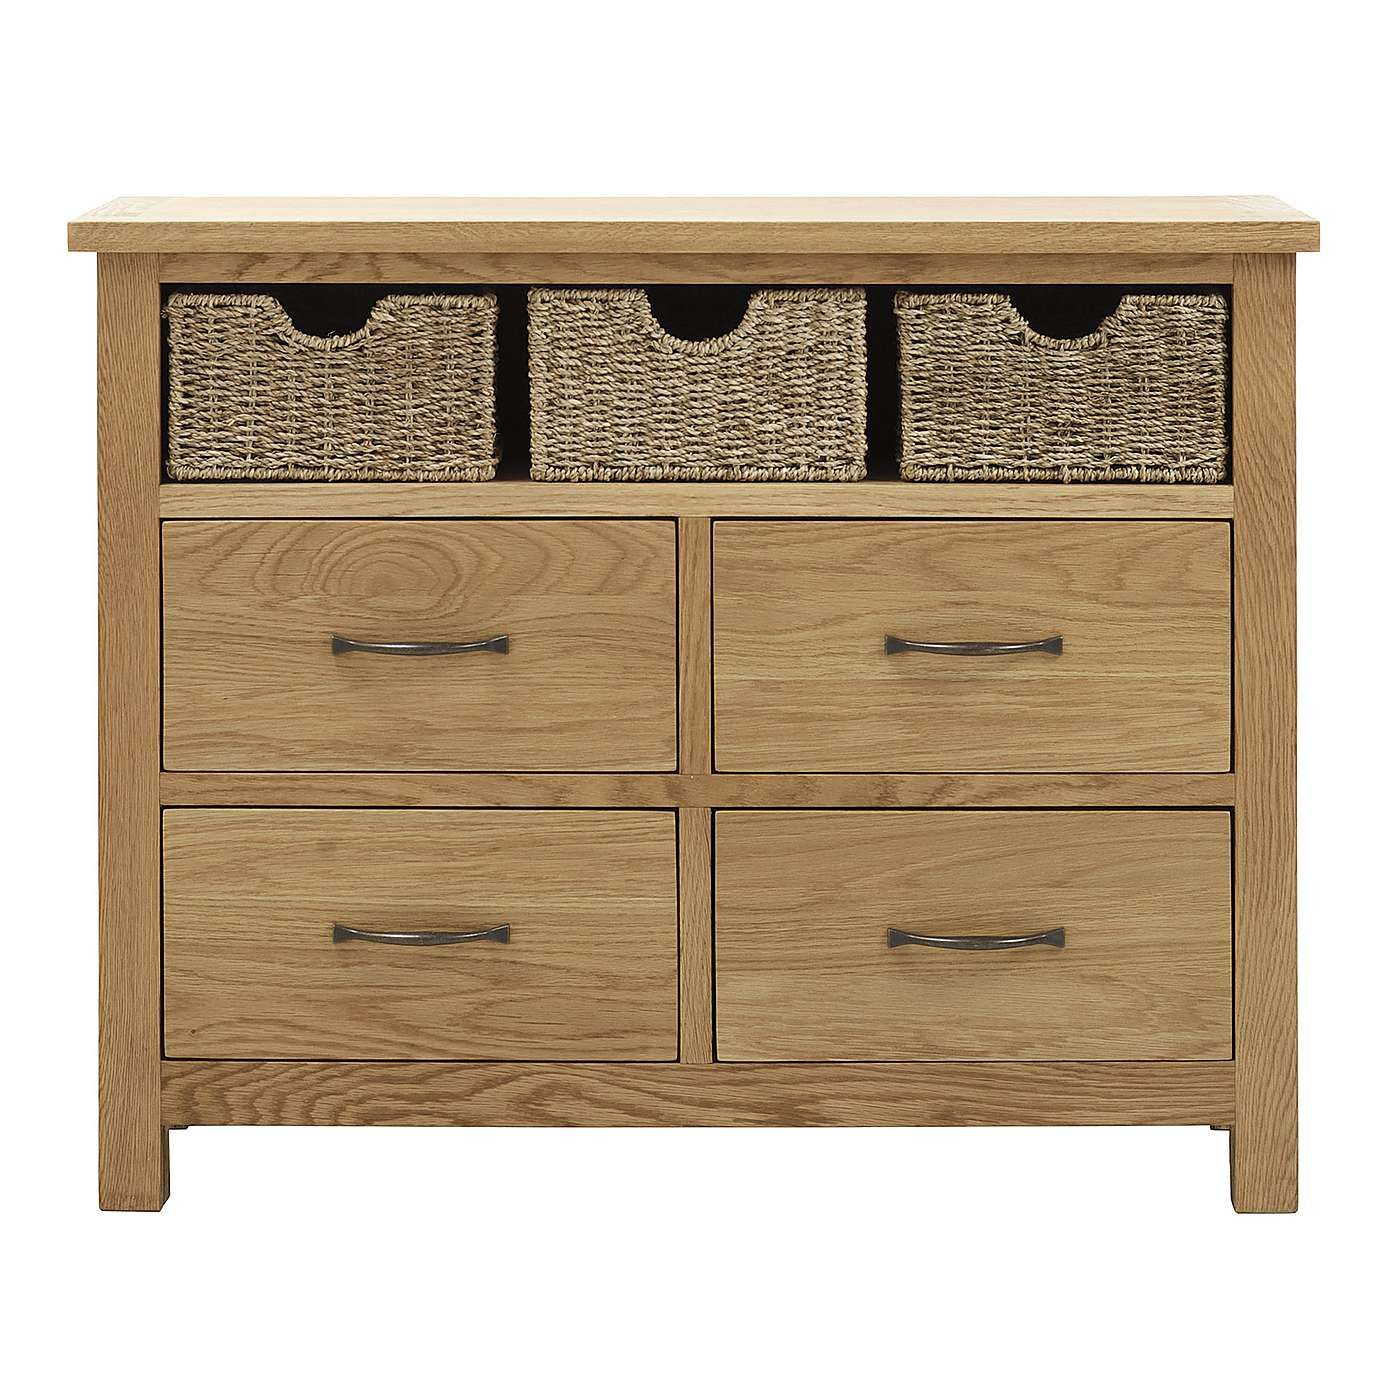 17 best images about side boards on Pinterest Oak sideboard English and  Dining room decorating. Home Bargains Furniture To Go   Arudis com